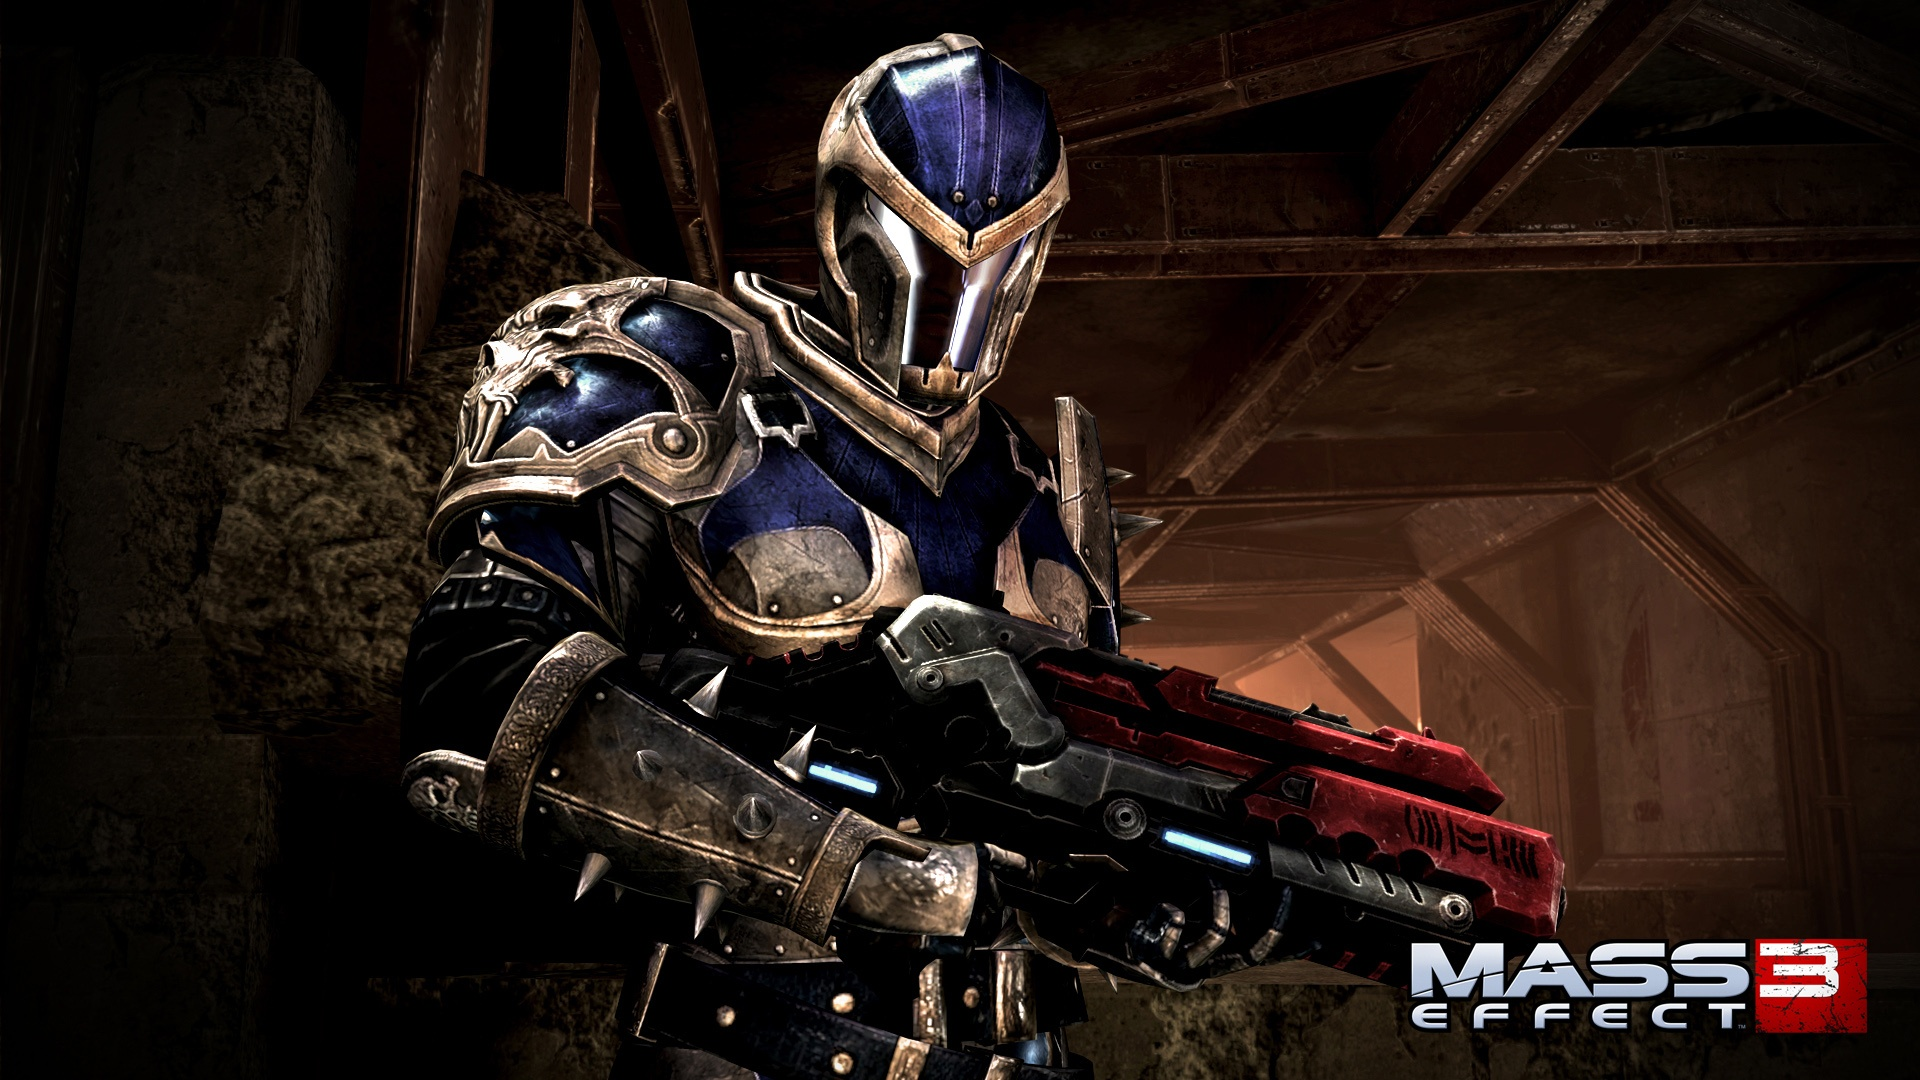 Wallpaper Mass Effect 3 Soldier 1920x1080 Full Hd 2k Picture Image